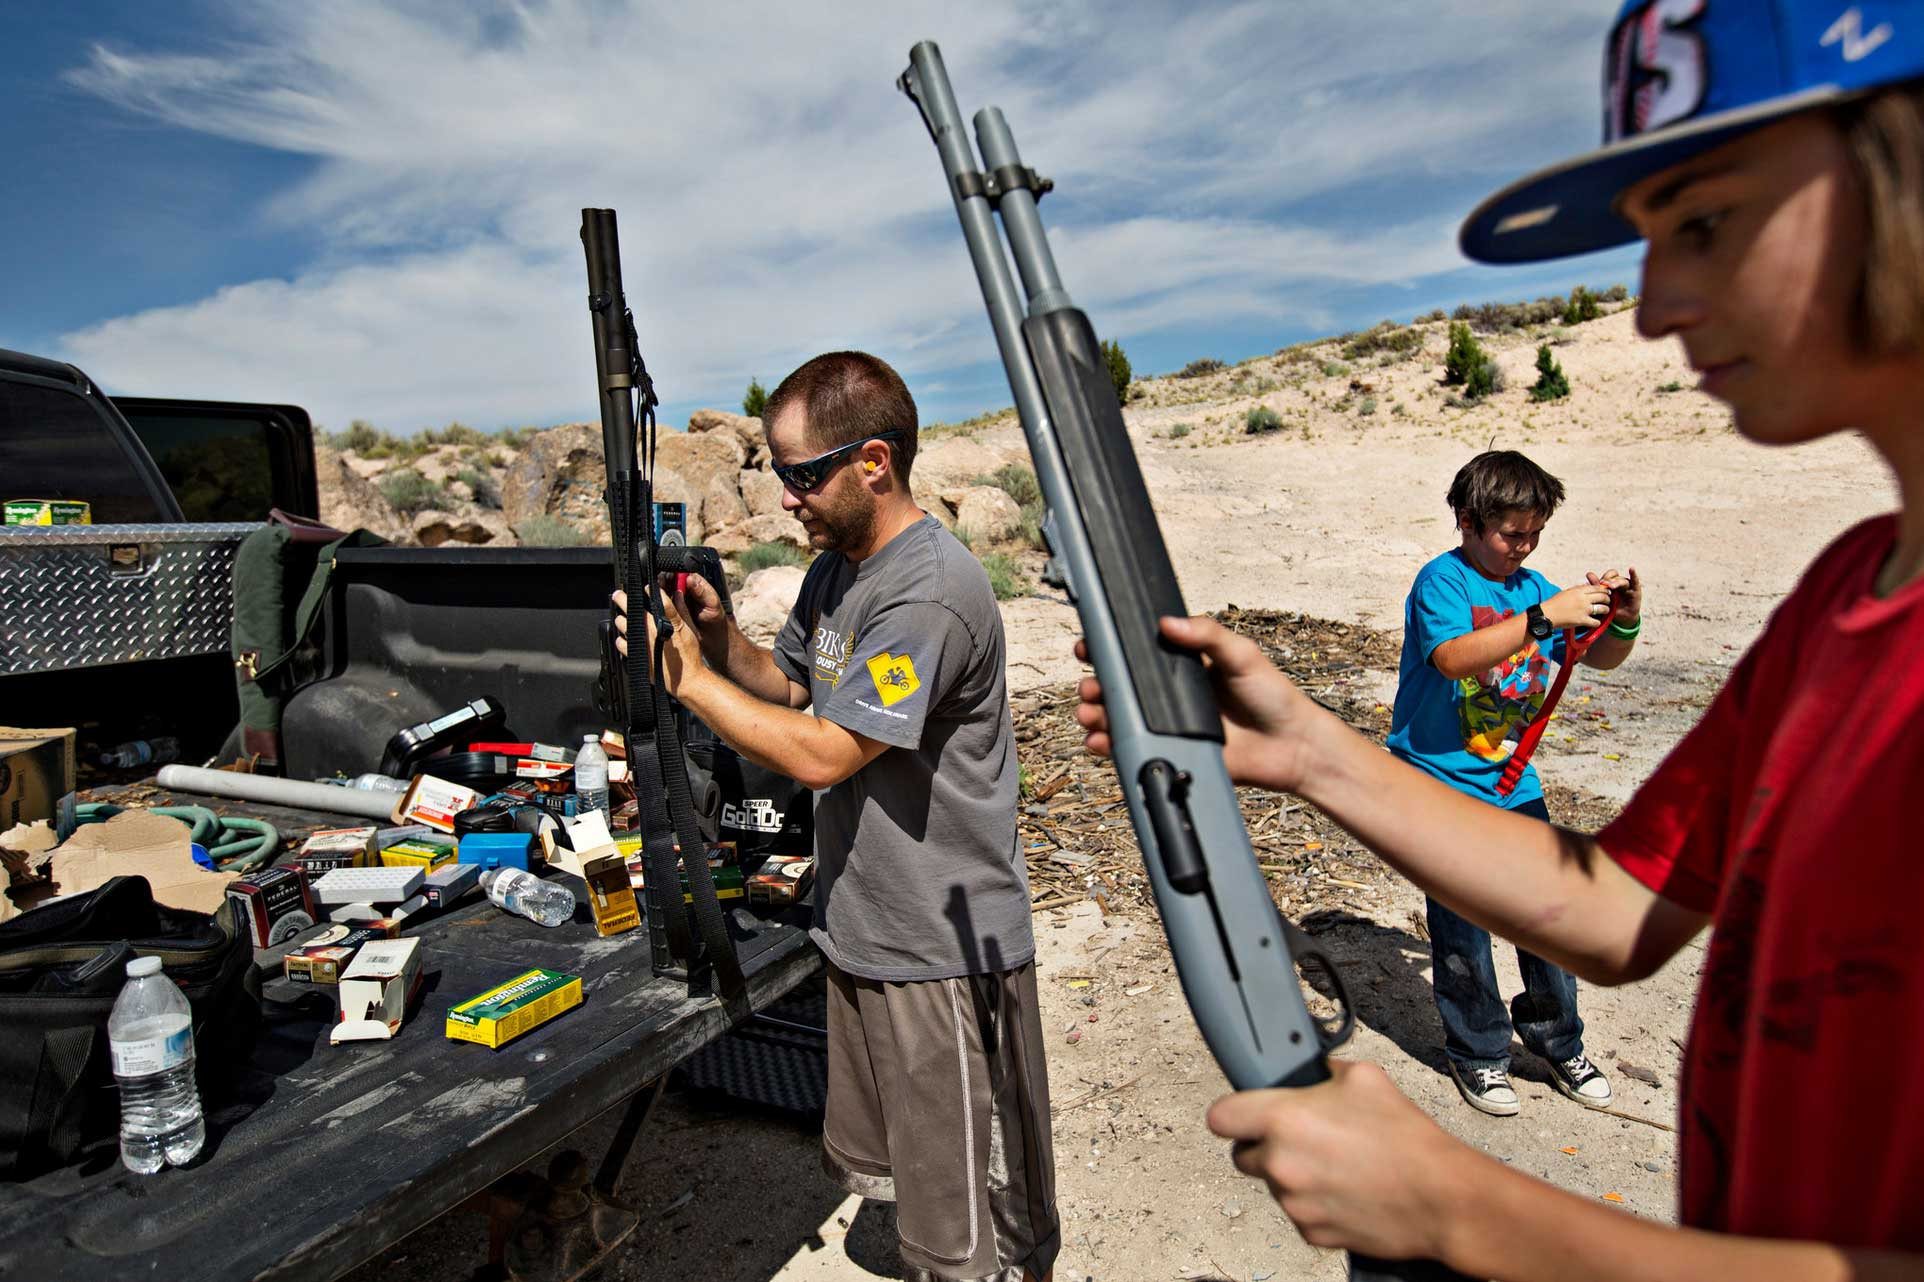 Dave Joseph, left, and his son, Casey, right, loaded guns for target shooting this month on land owned by the Utah School and Institutional Trust Lands Administration. (Photo: New York Times)